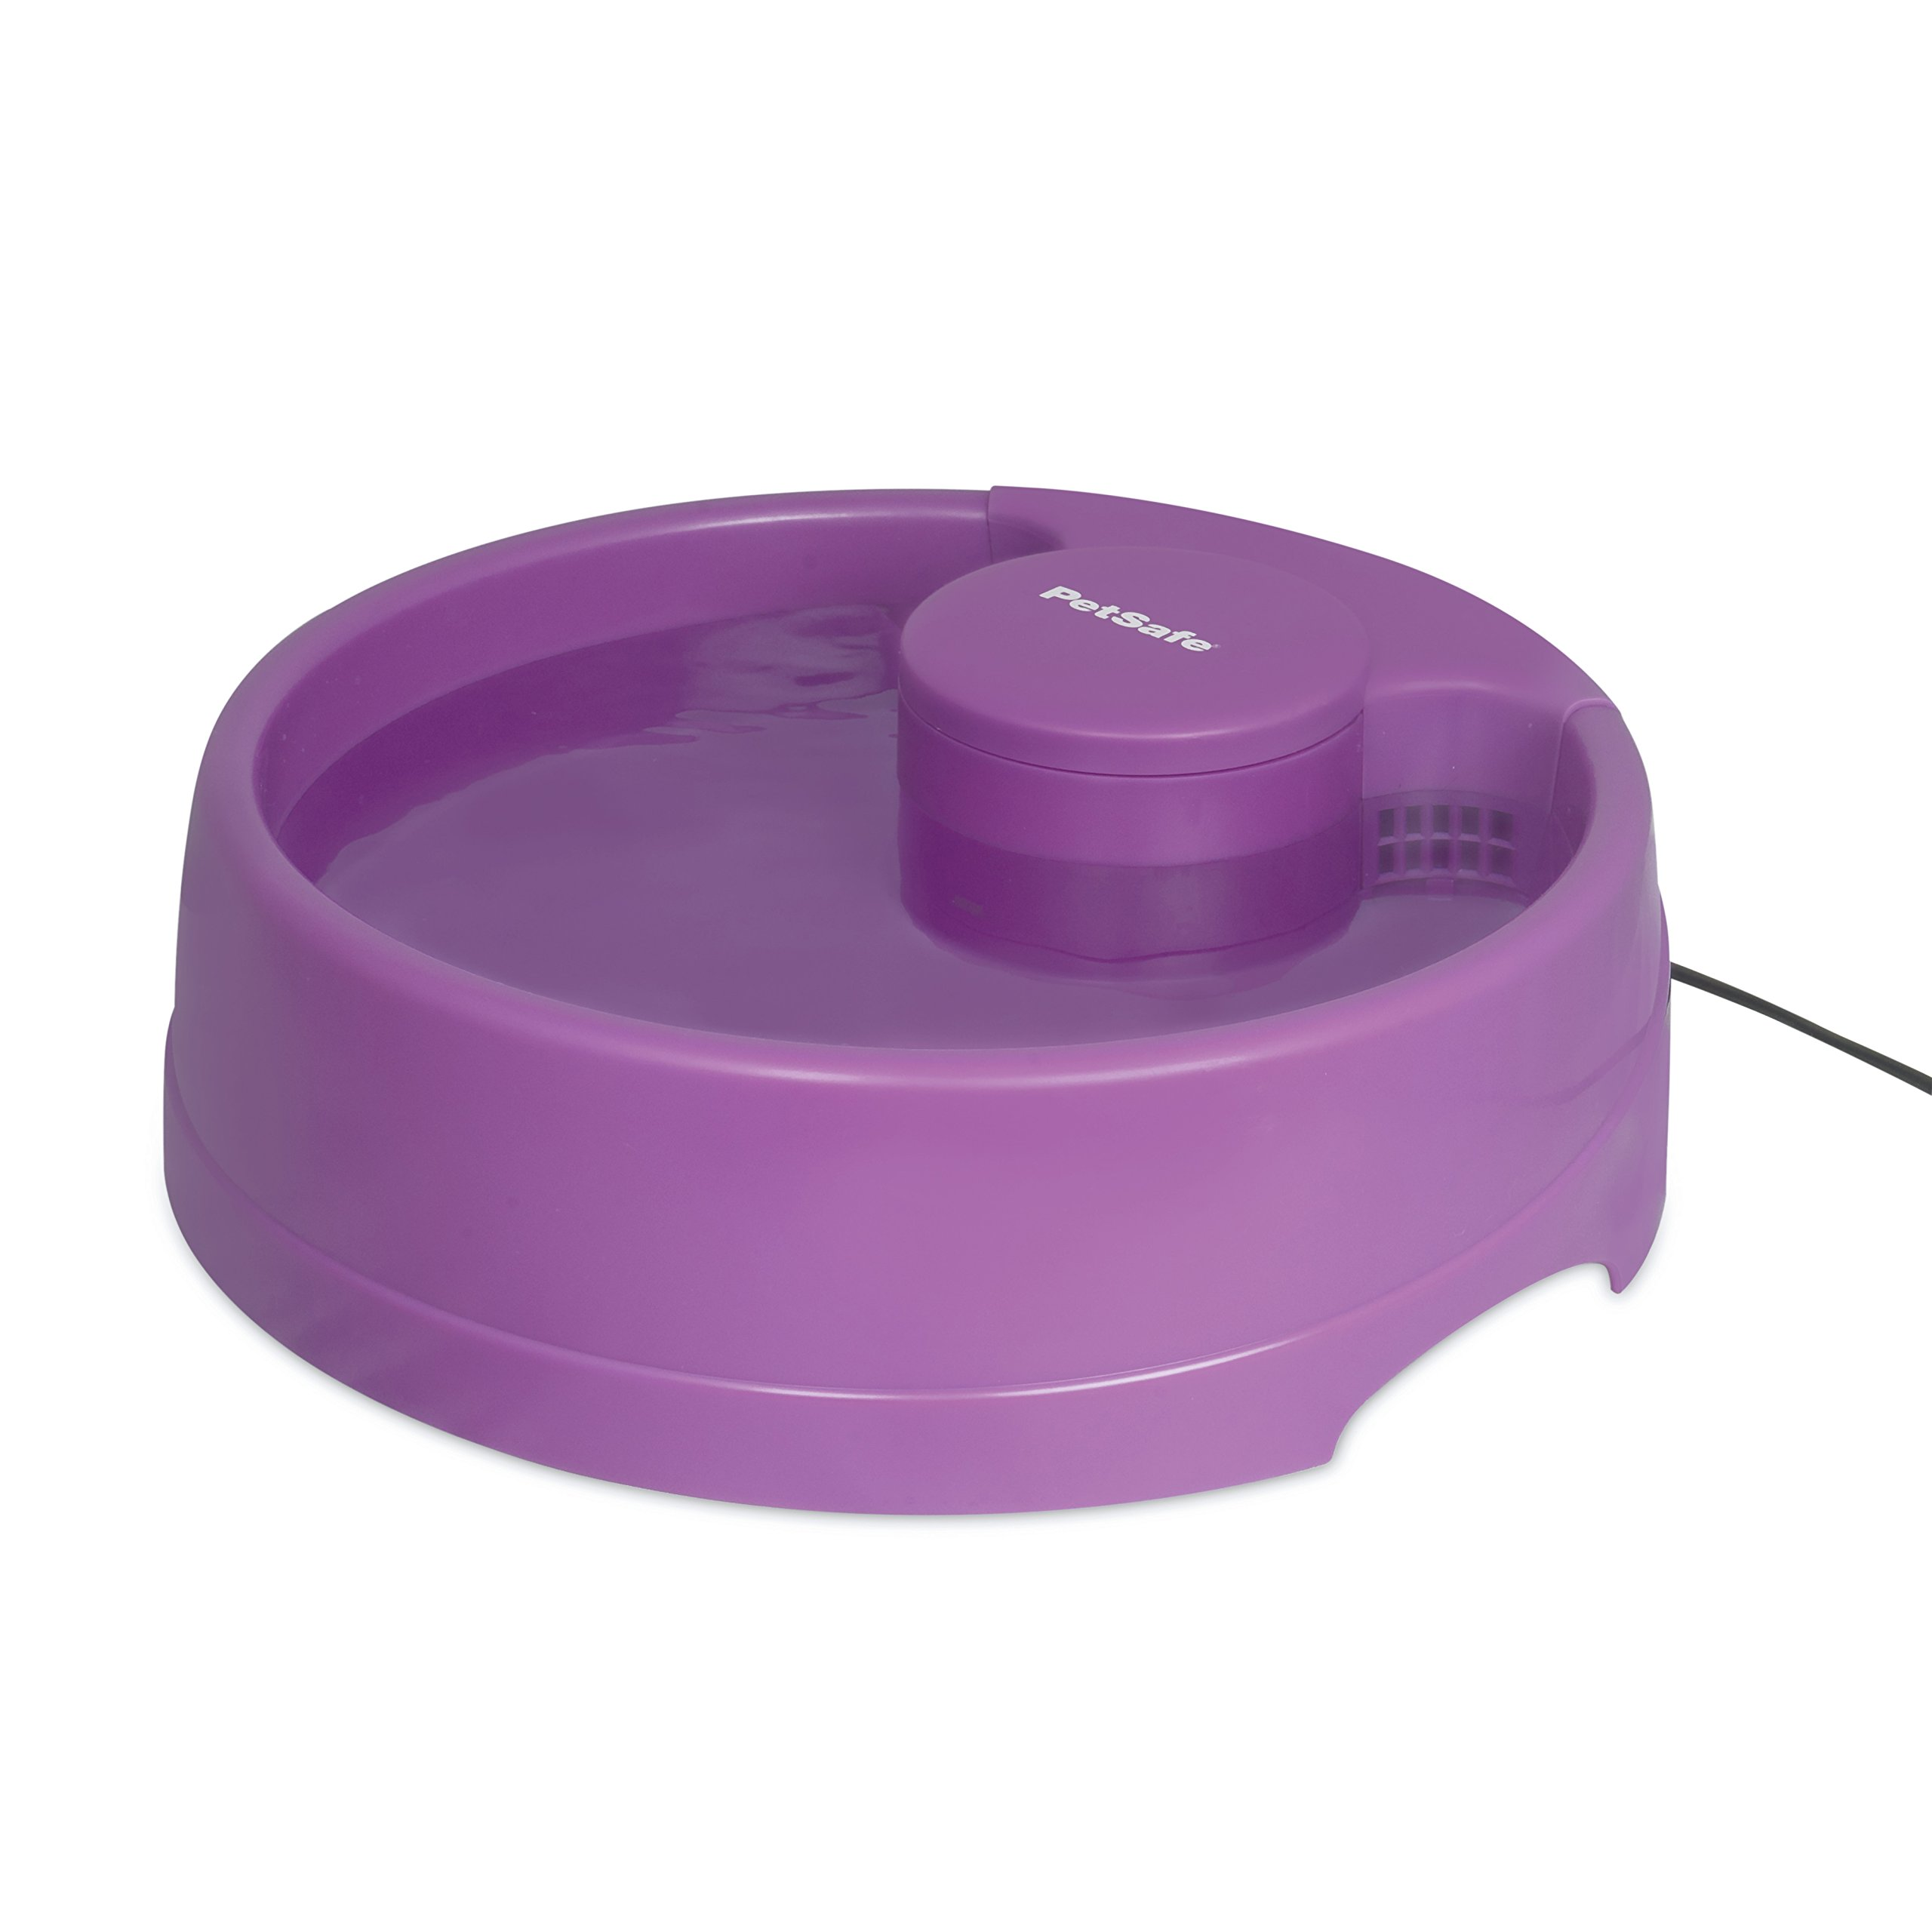 PetSafe Current Pet Water Fountain, Circulating Drinking Fountain for Cats and Dogs, Large, Purple, 120 oz. Water Capacity